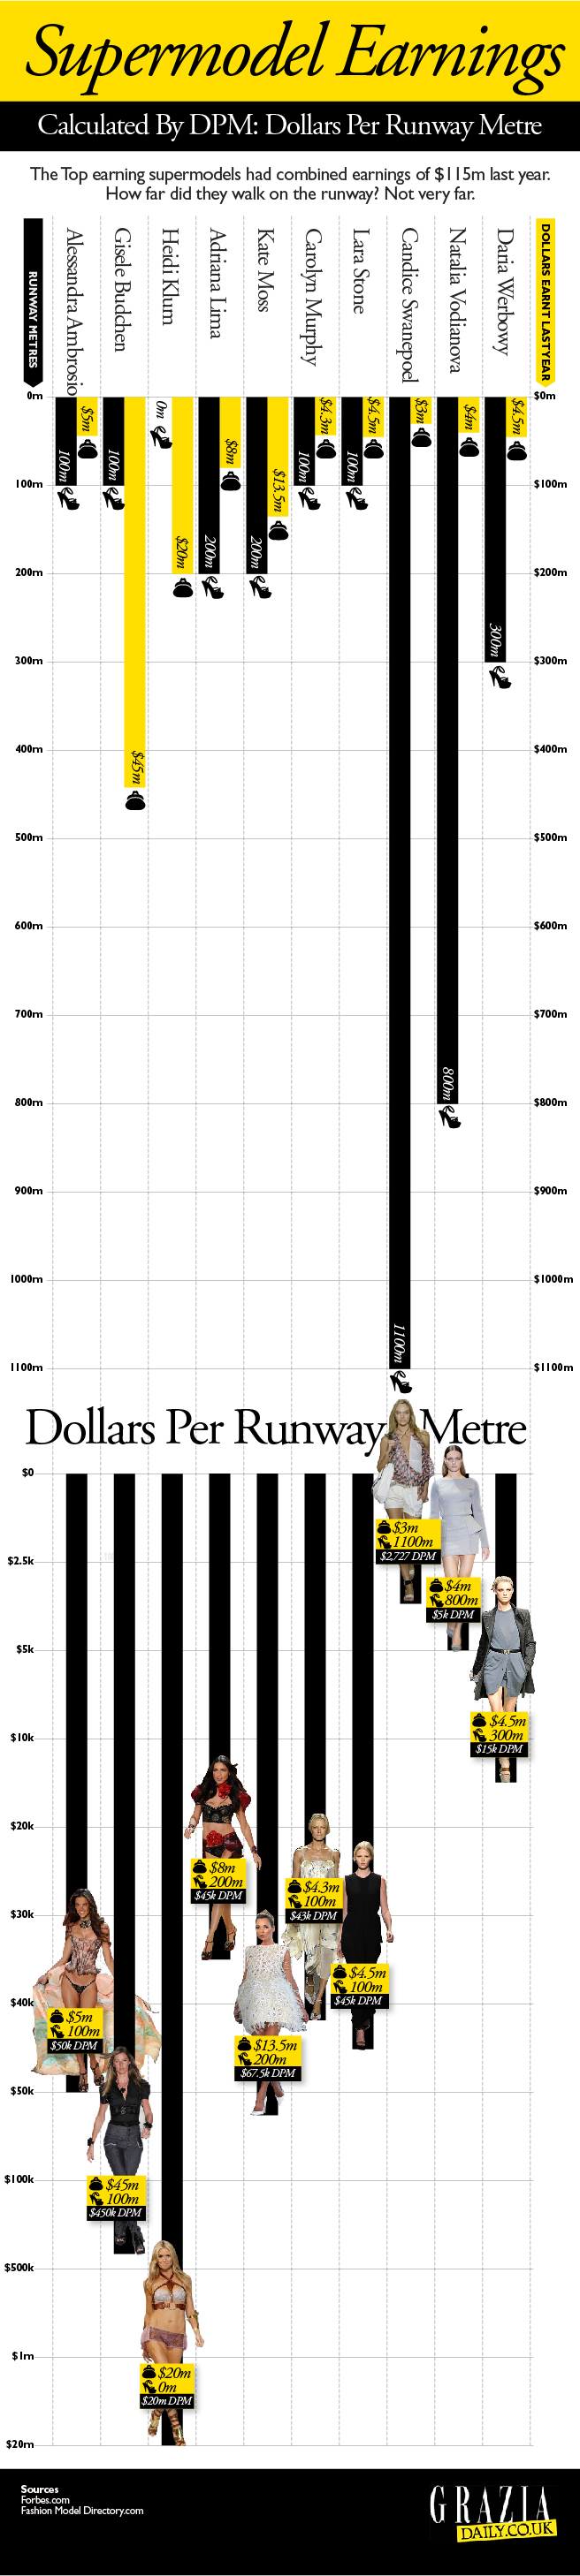 Supermodel-Earnings-infographic